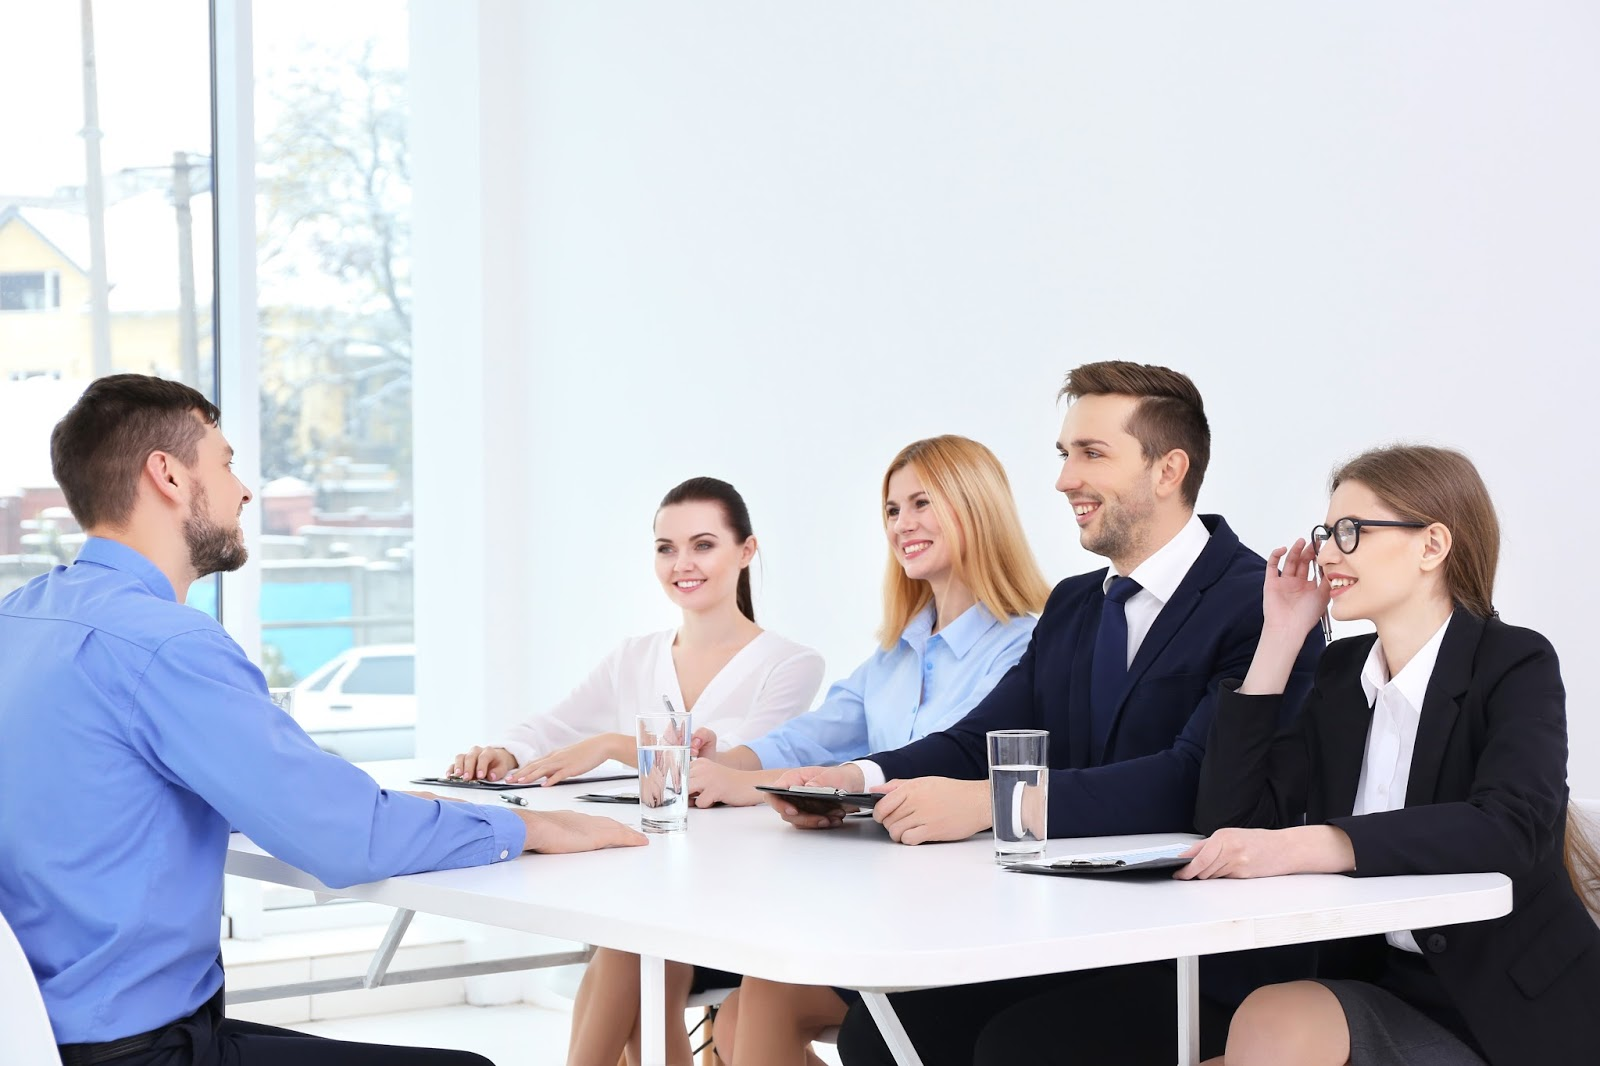 high heel business 10 tips to getting an interview 10 tips to getting an interview